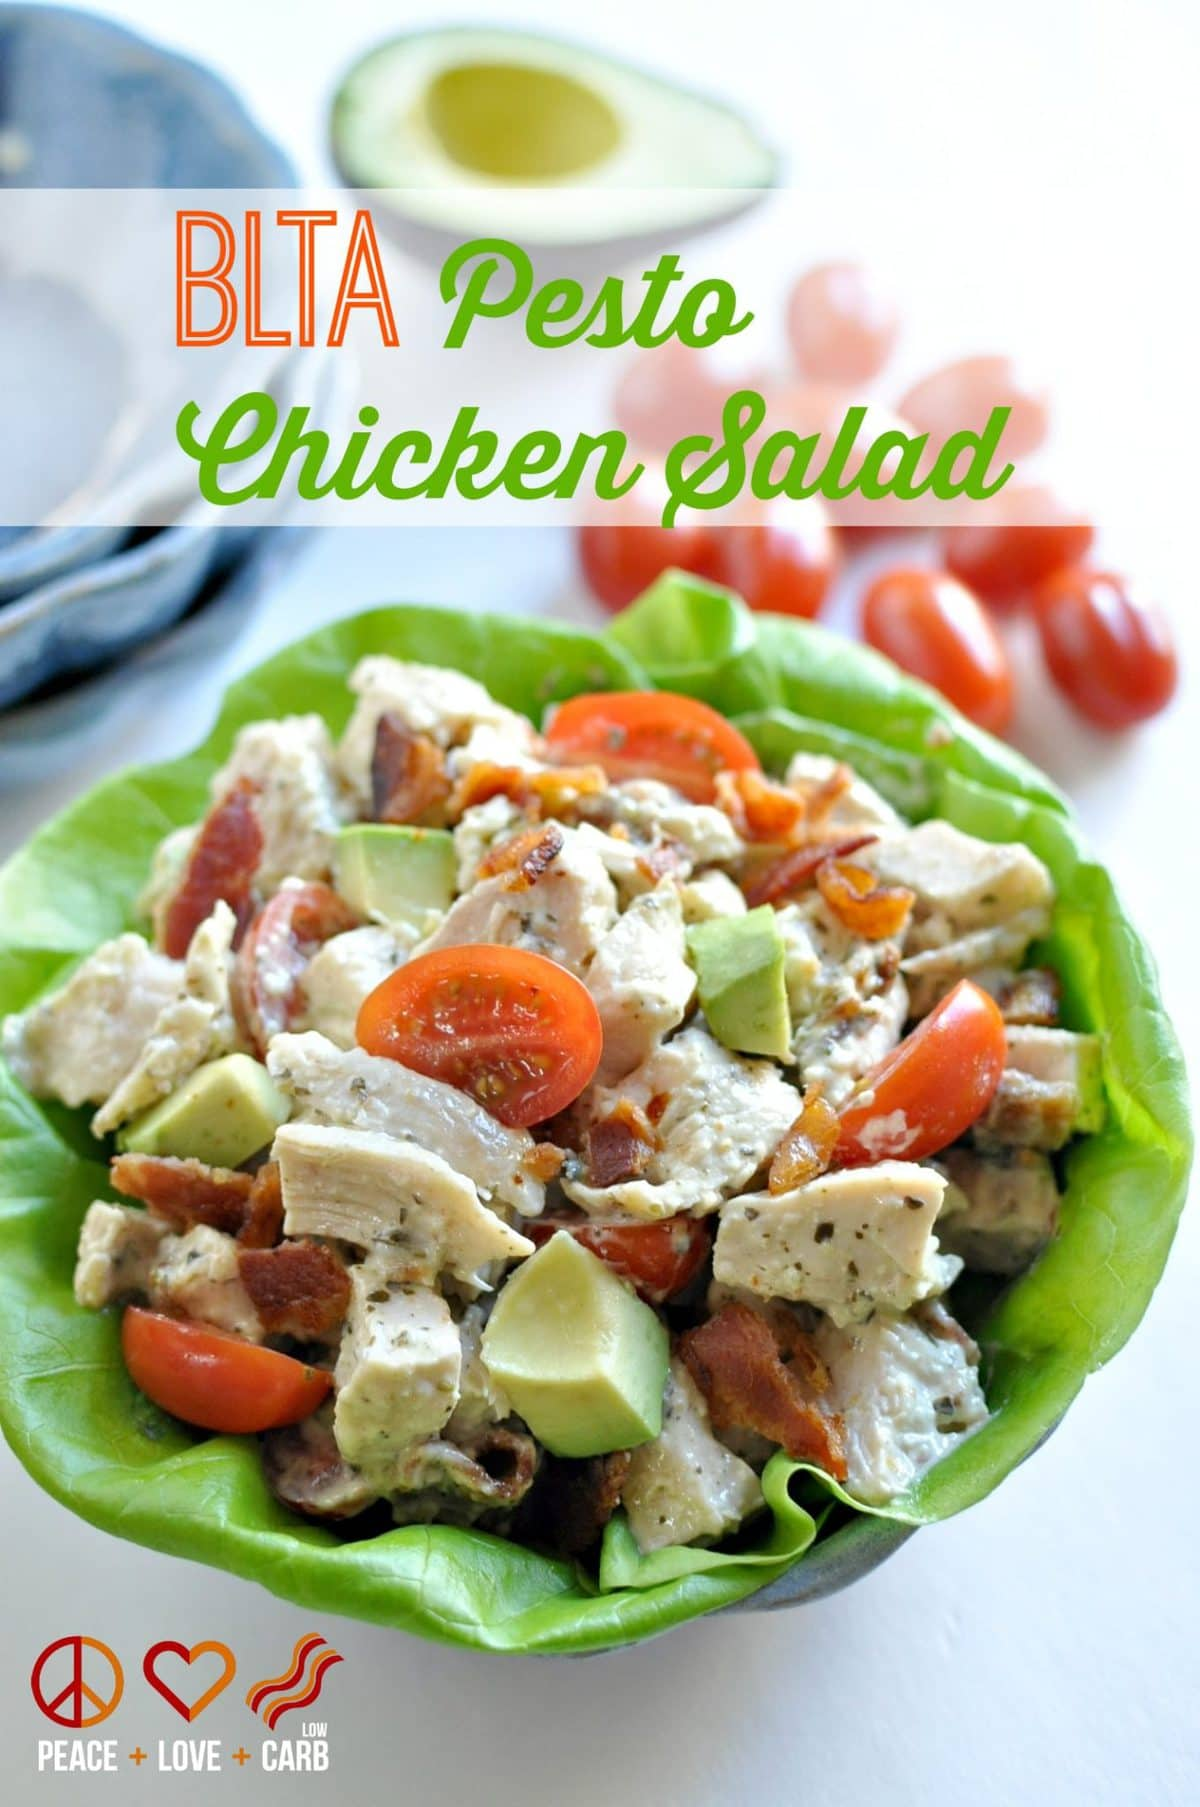 BLTA Pesto Chicken Salad - Low Carb, Gluten Free, Paleo  Peace, Love and Low Carb